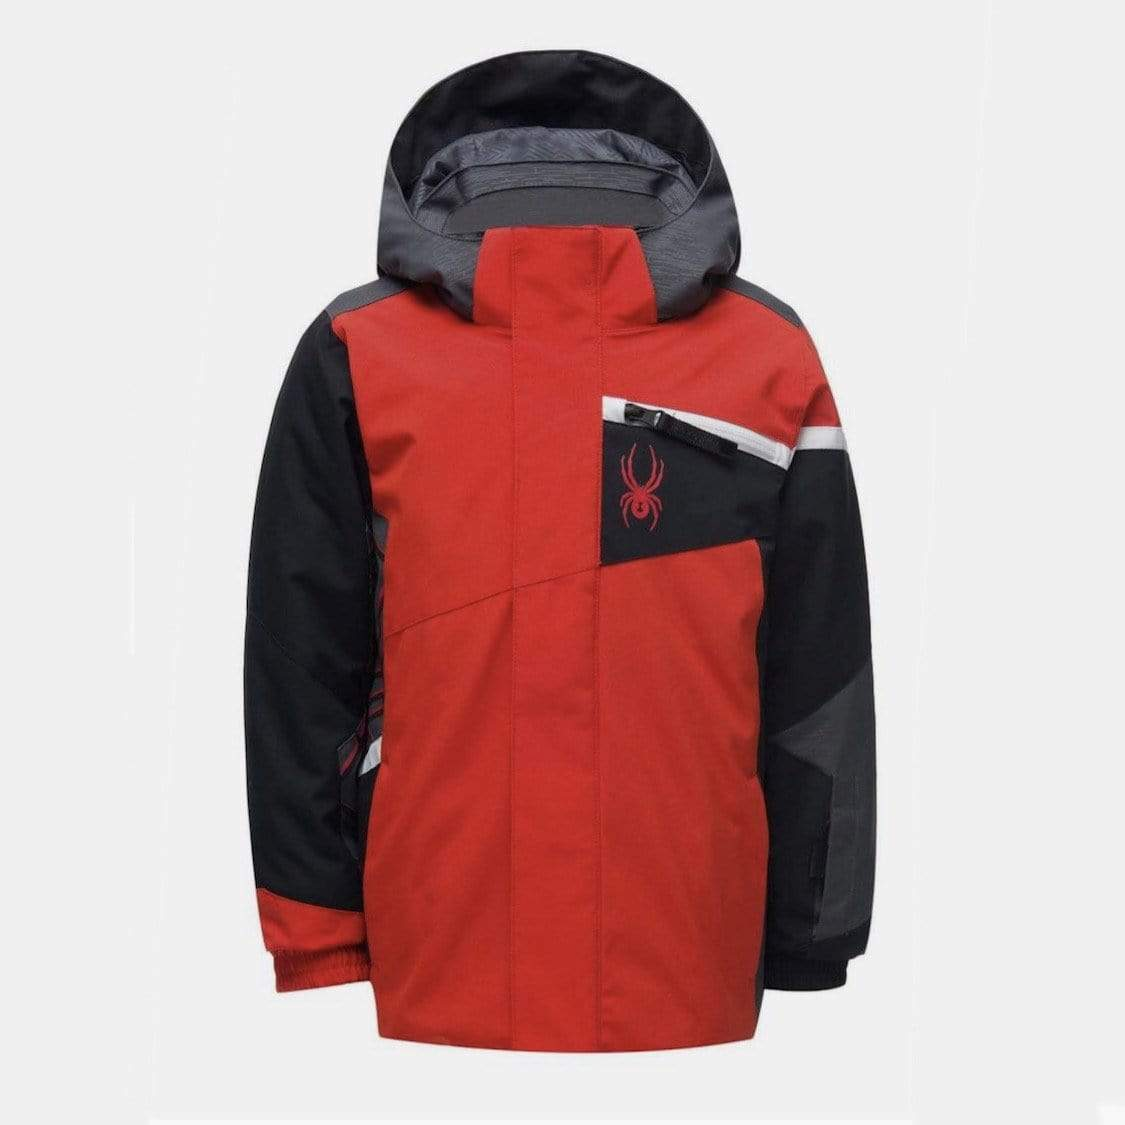 Spyder - Boys' Volcano Red Challenger Jacket Winter Jacket Spyder 2 Years